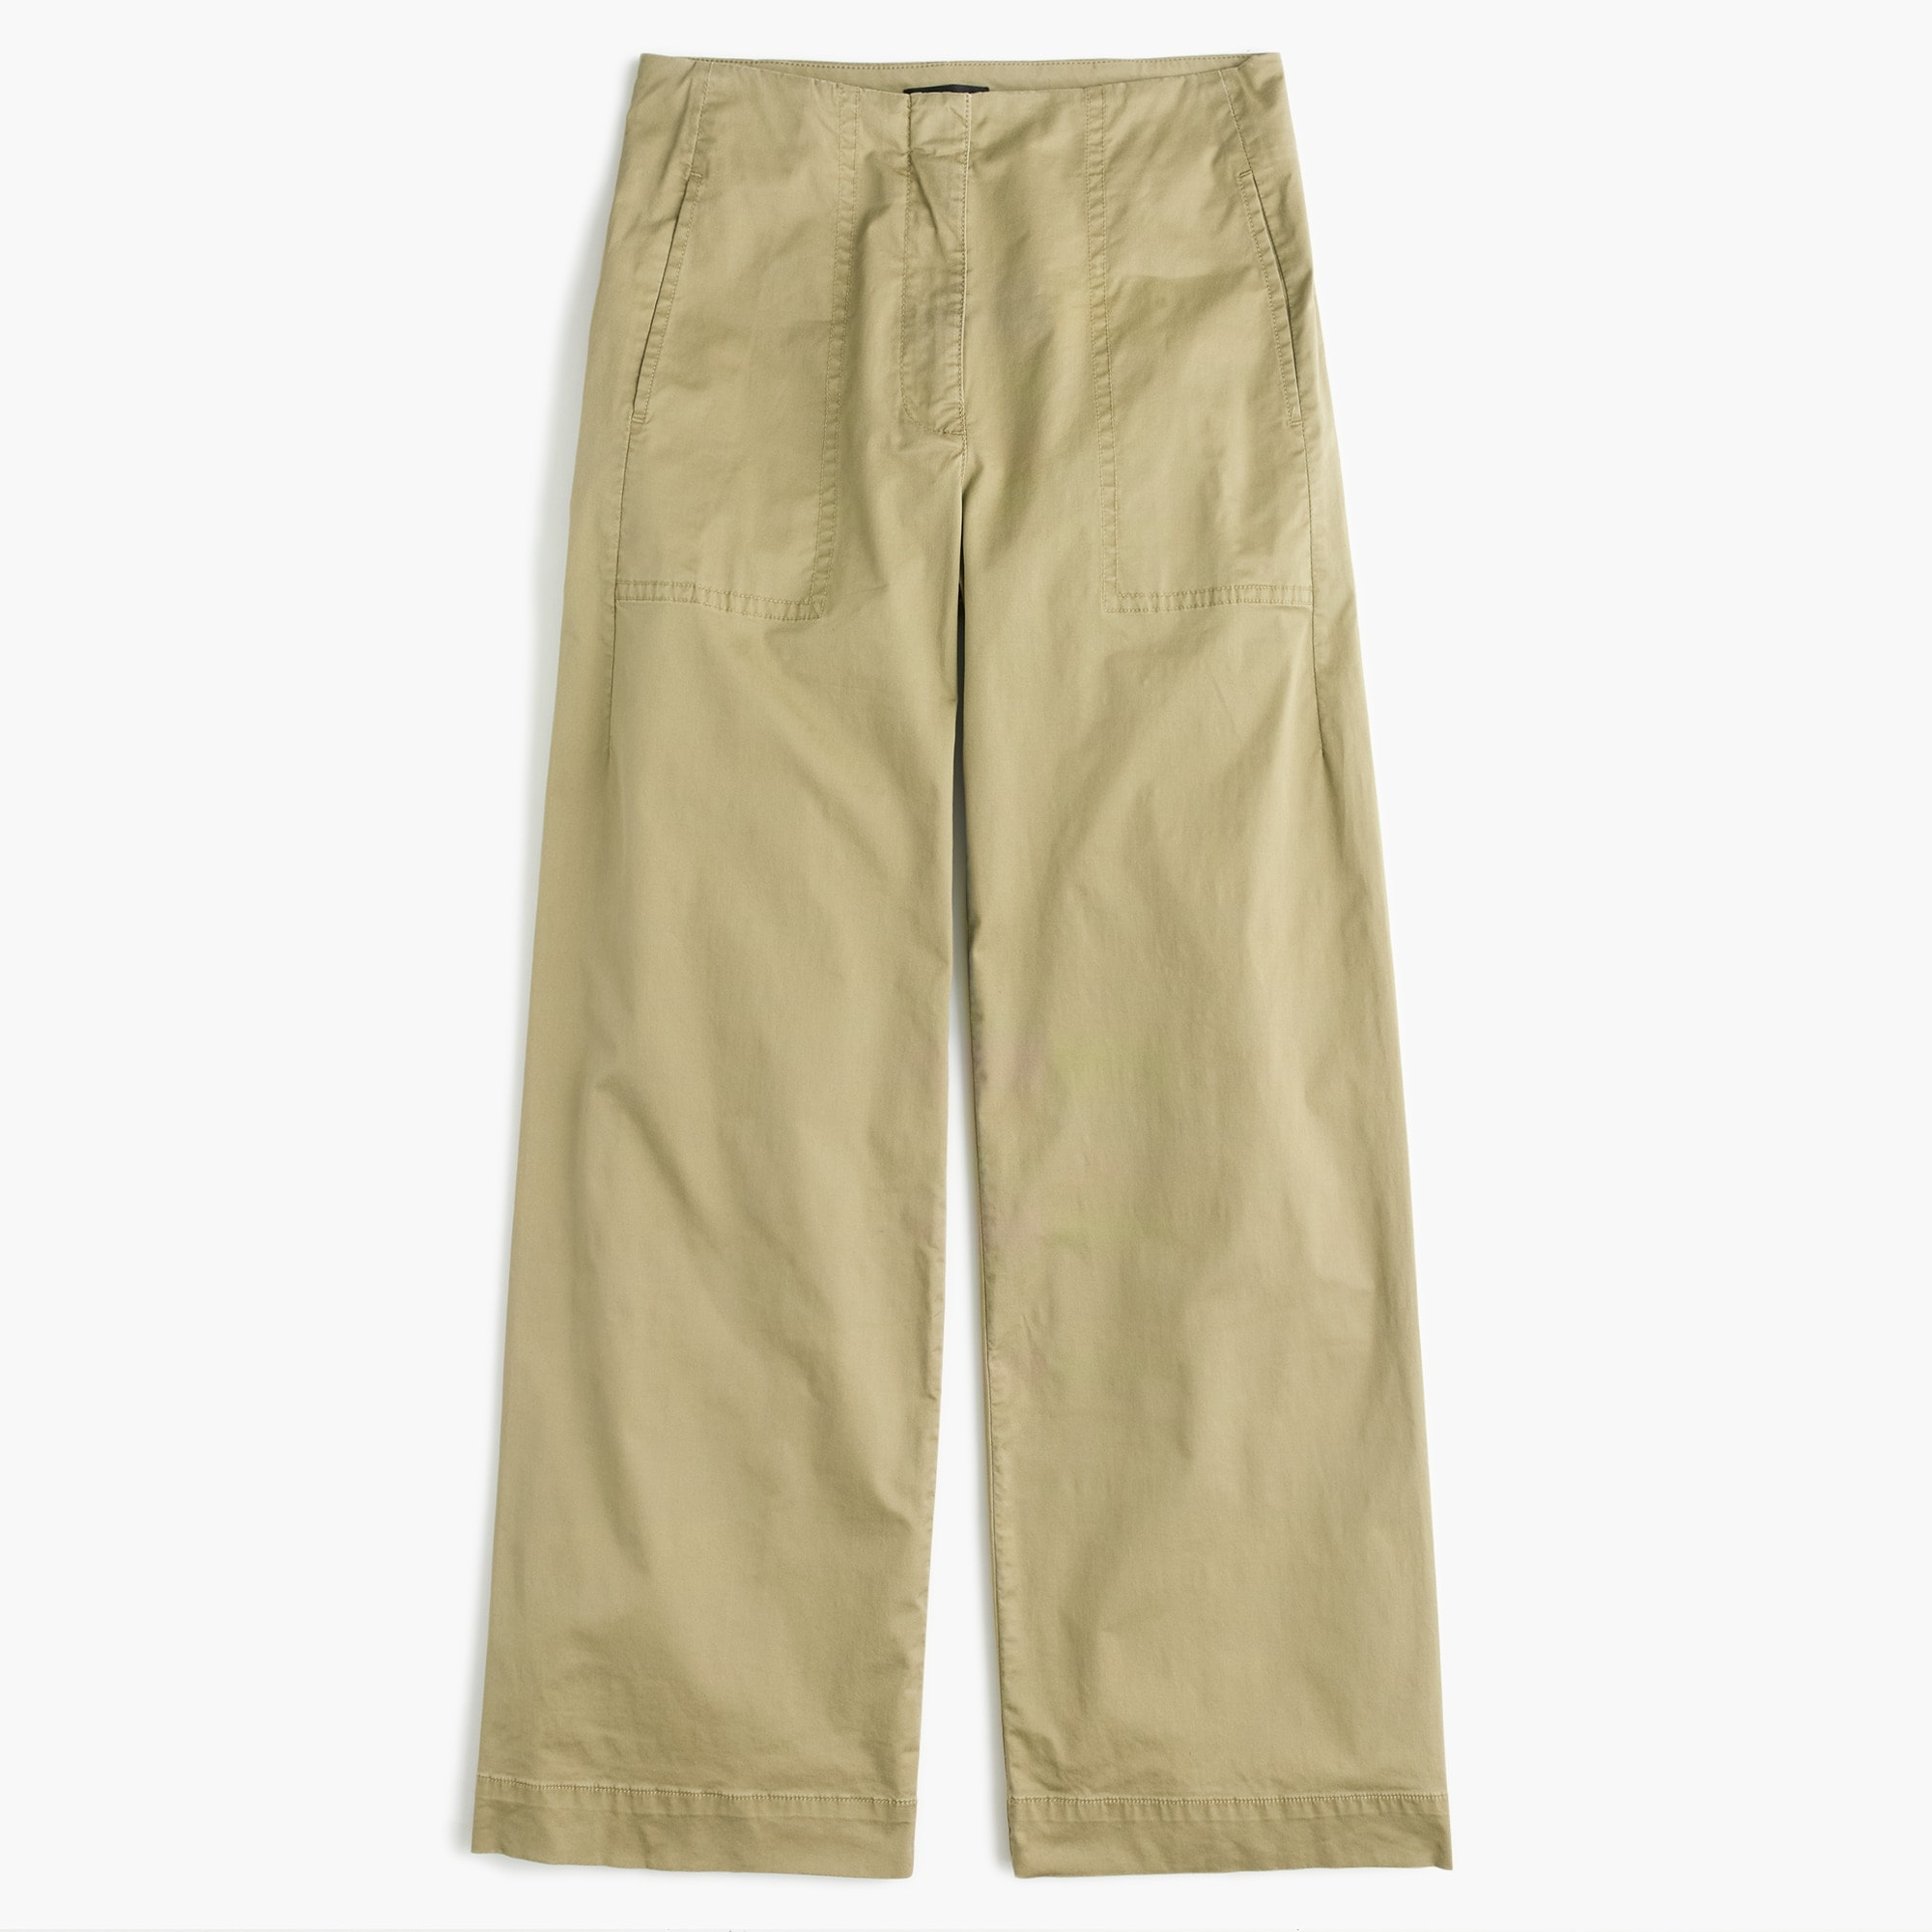 Image 2 for Cropped pant in stretch chino